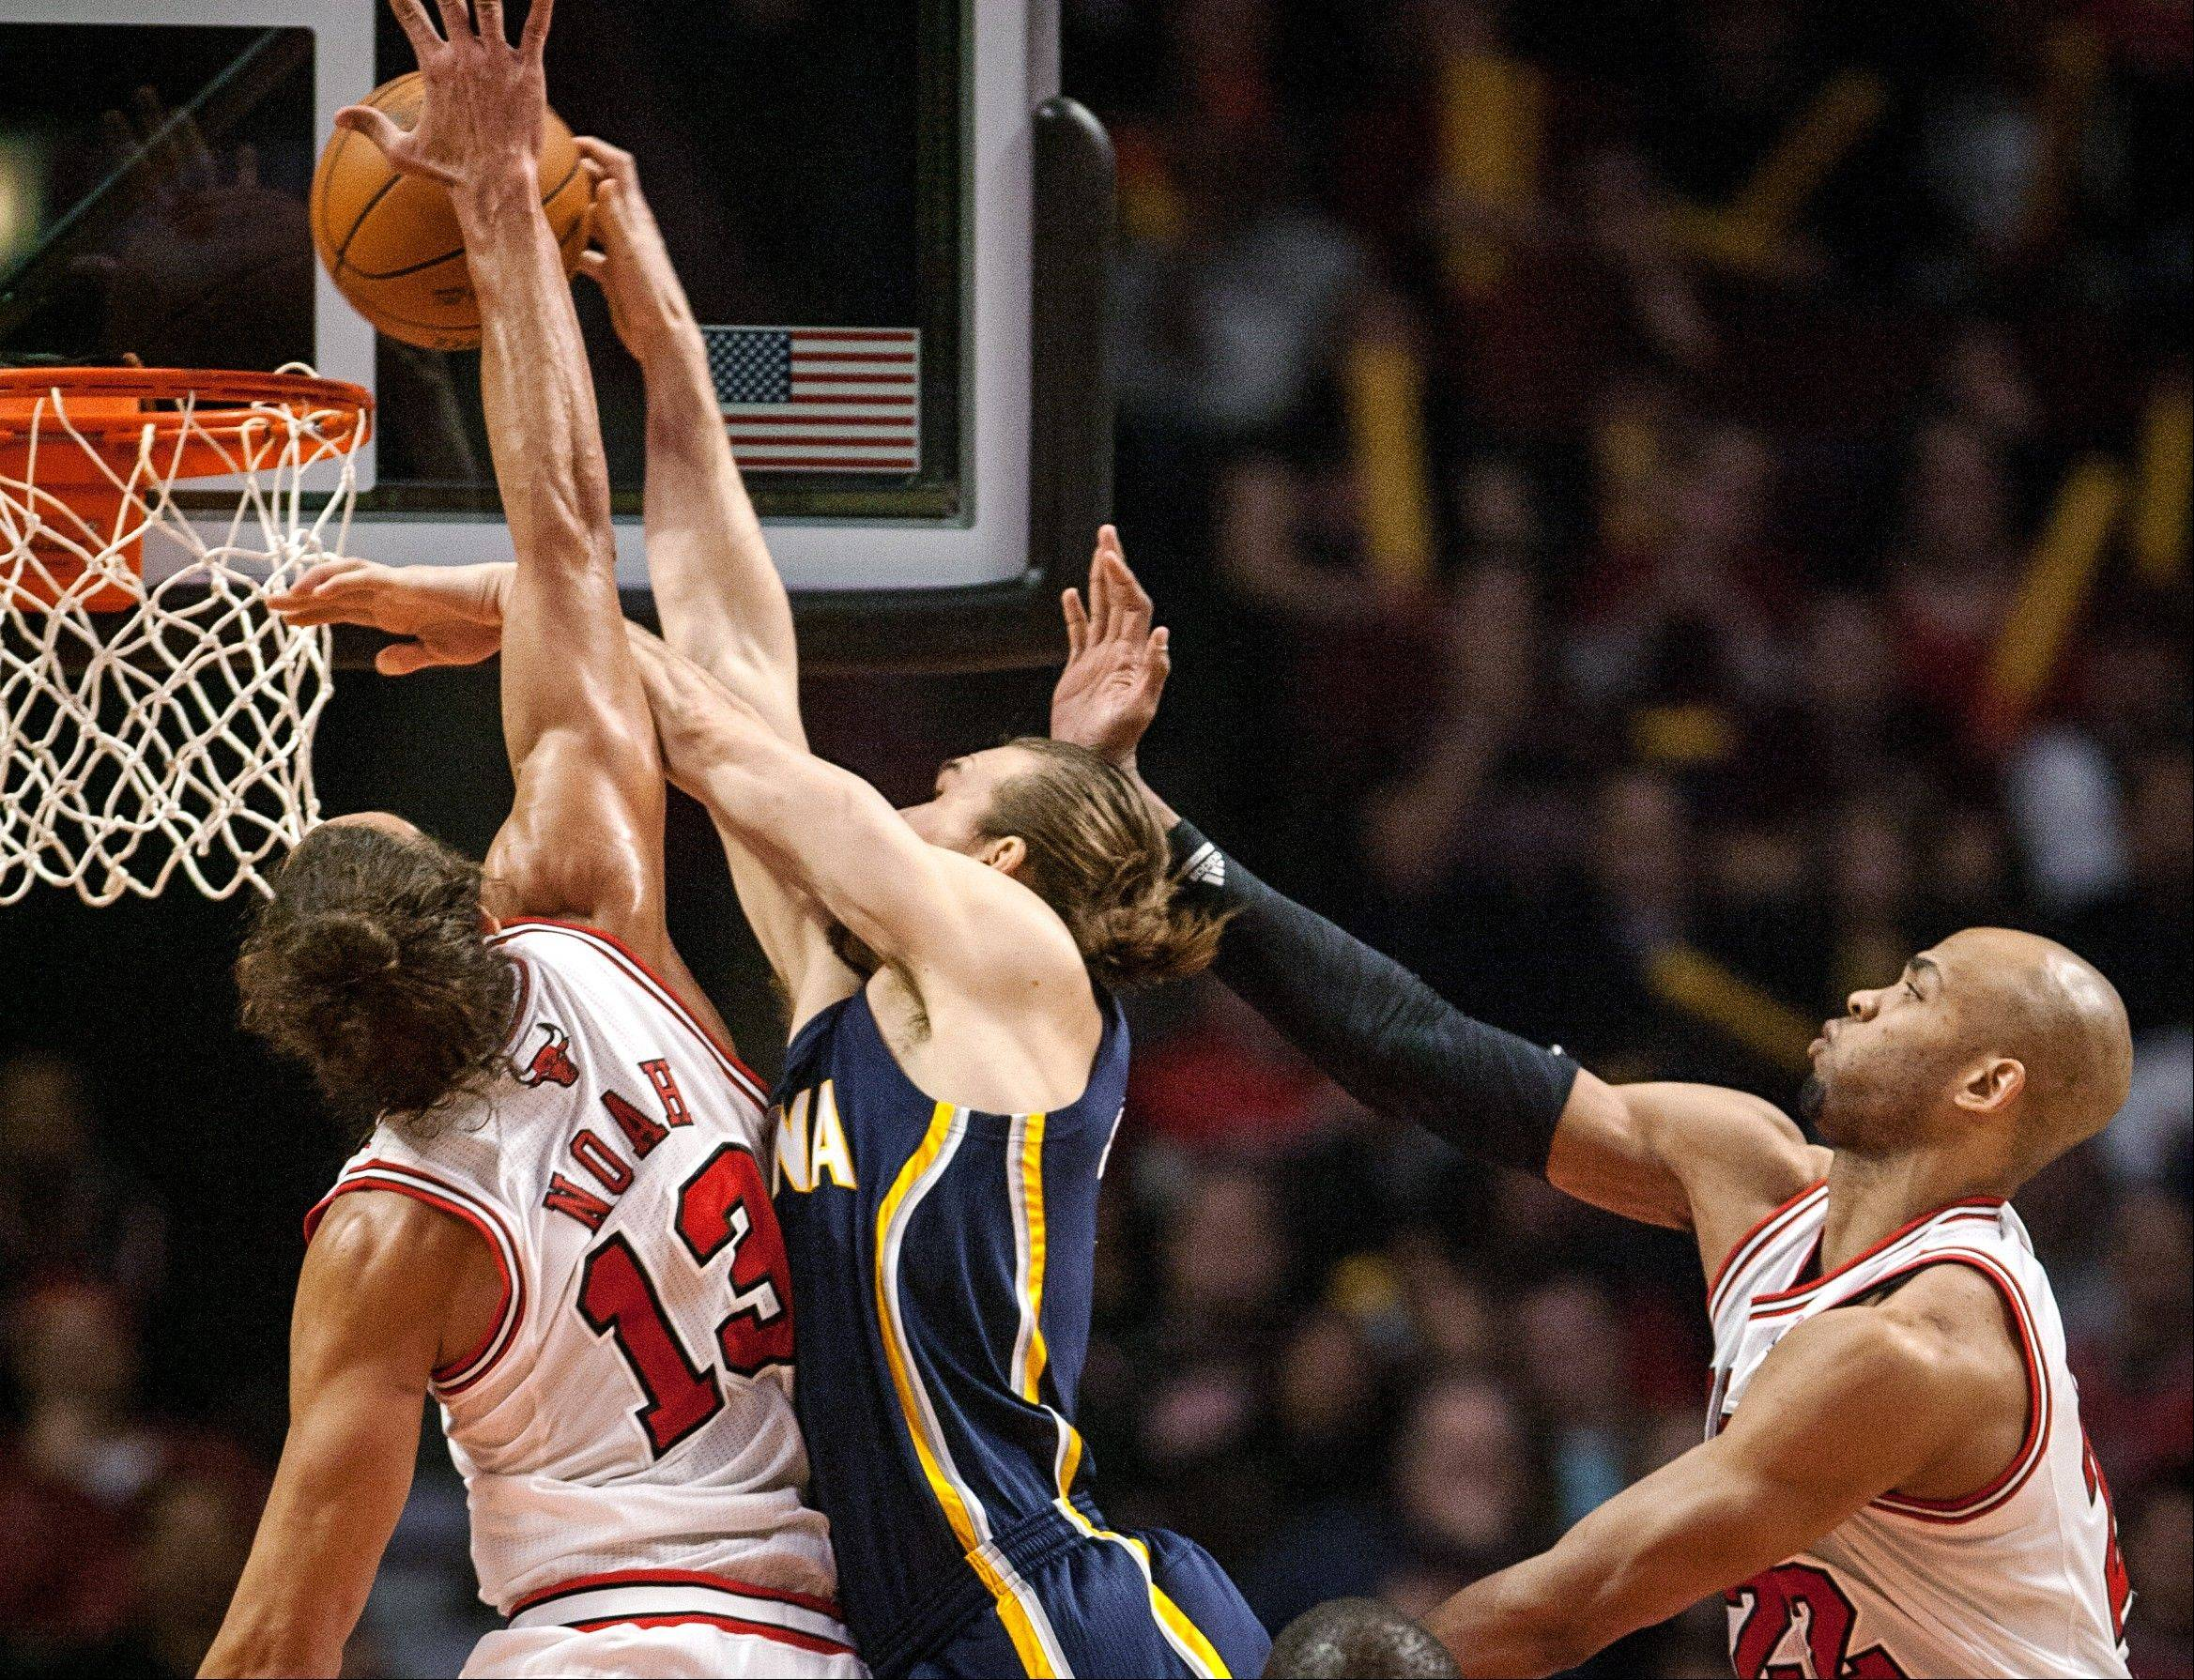 Chicago Bulls' Joakim Noah blocks a shot by the Indiana Pacers' Lou Admundson and is called for a foul during the first quarter of an NBA basketball game in Chicago on Monday, March 5, 2012. Bulls' Taj Gibson is at right.